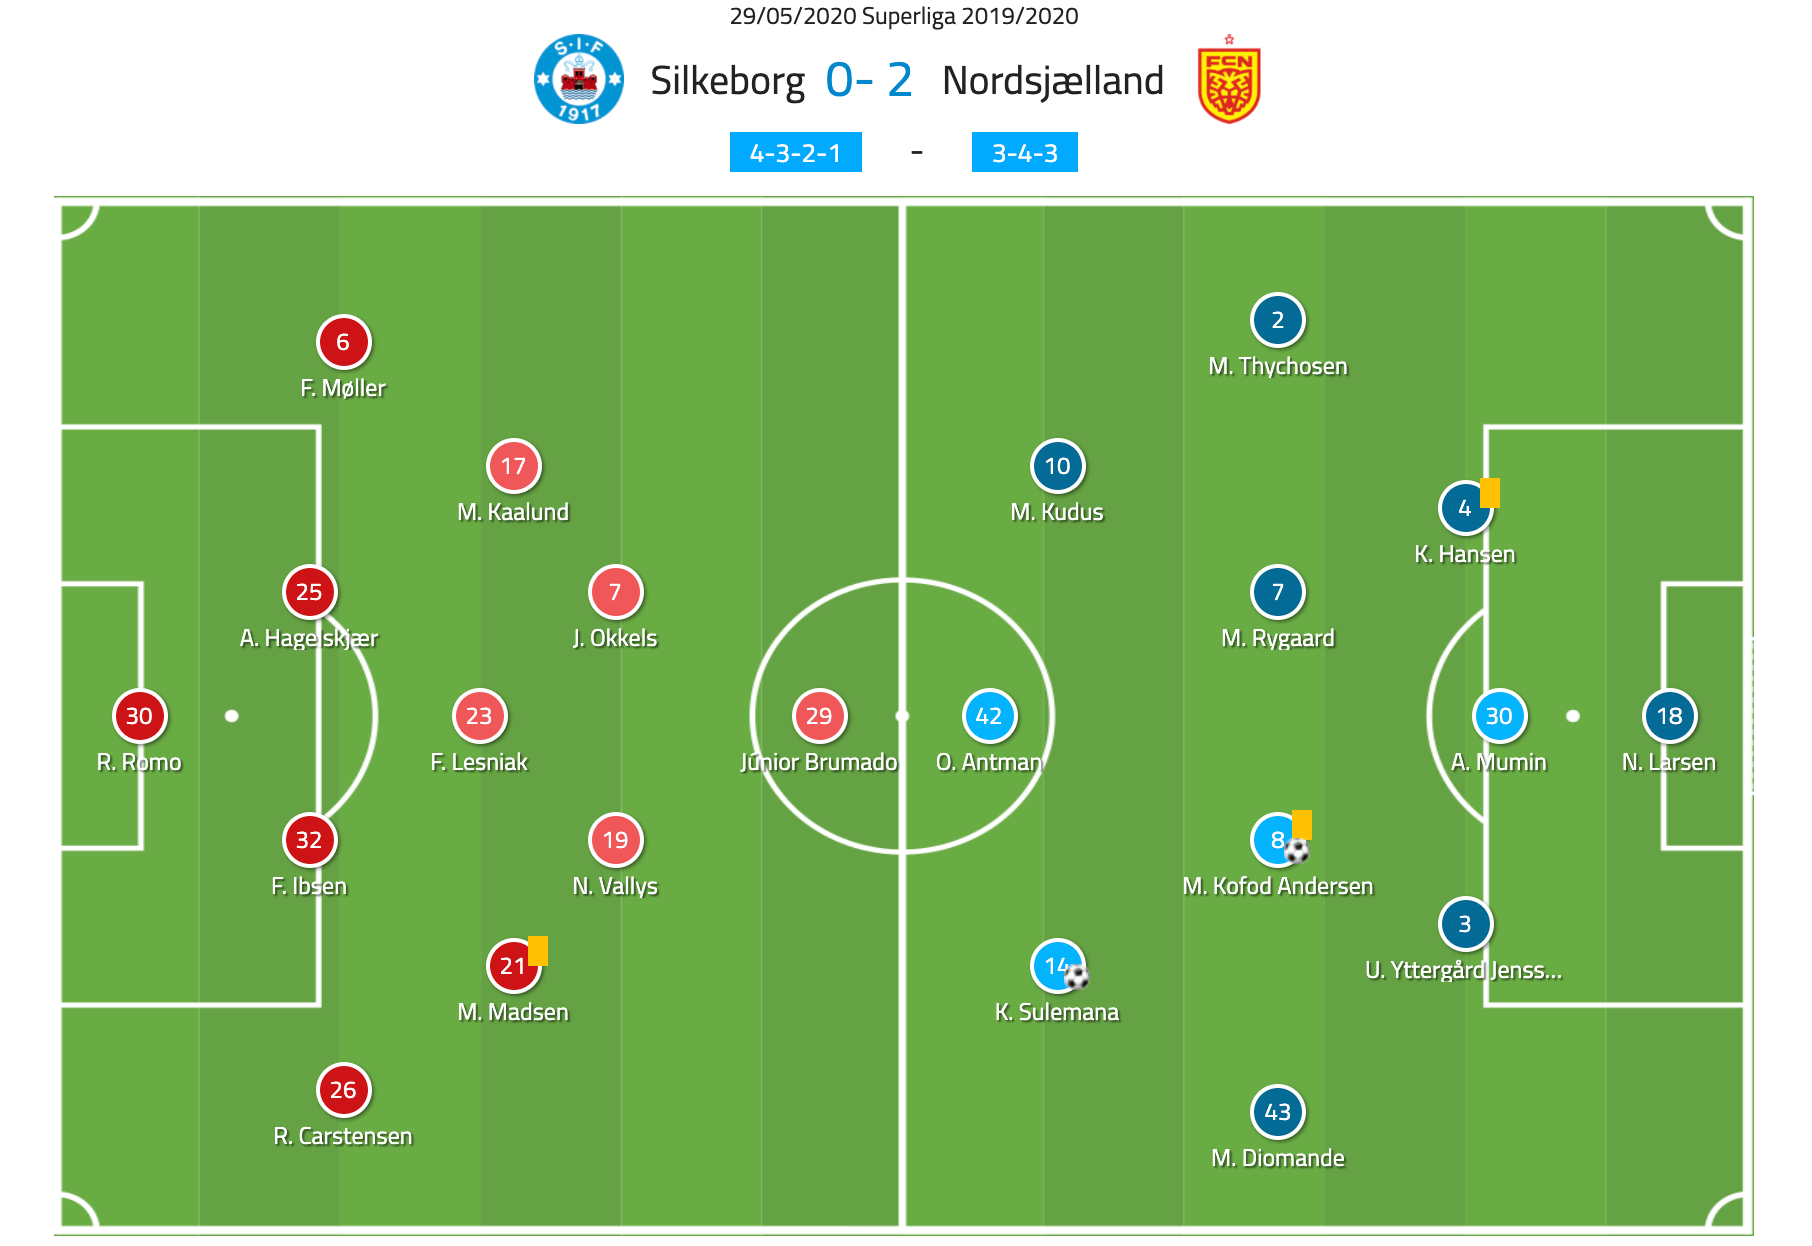 Superliga 2019/20: Silkeborg vs Nordsjaelland tactical analysis tactics